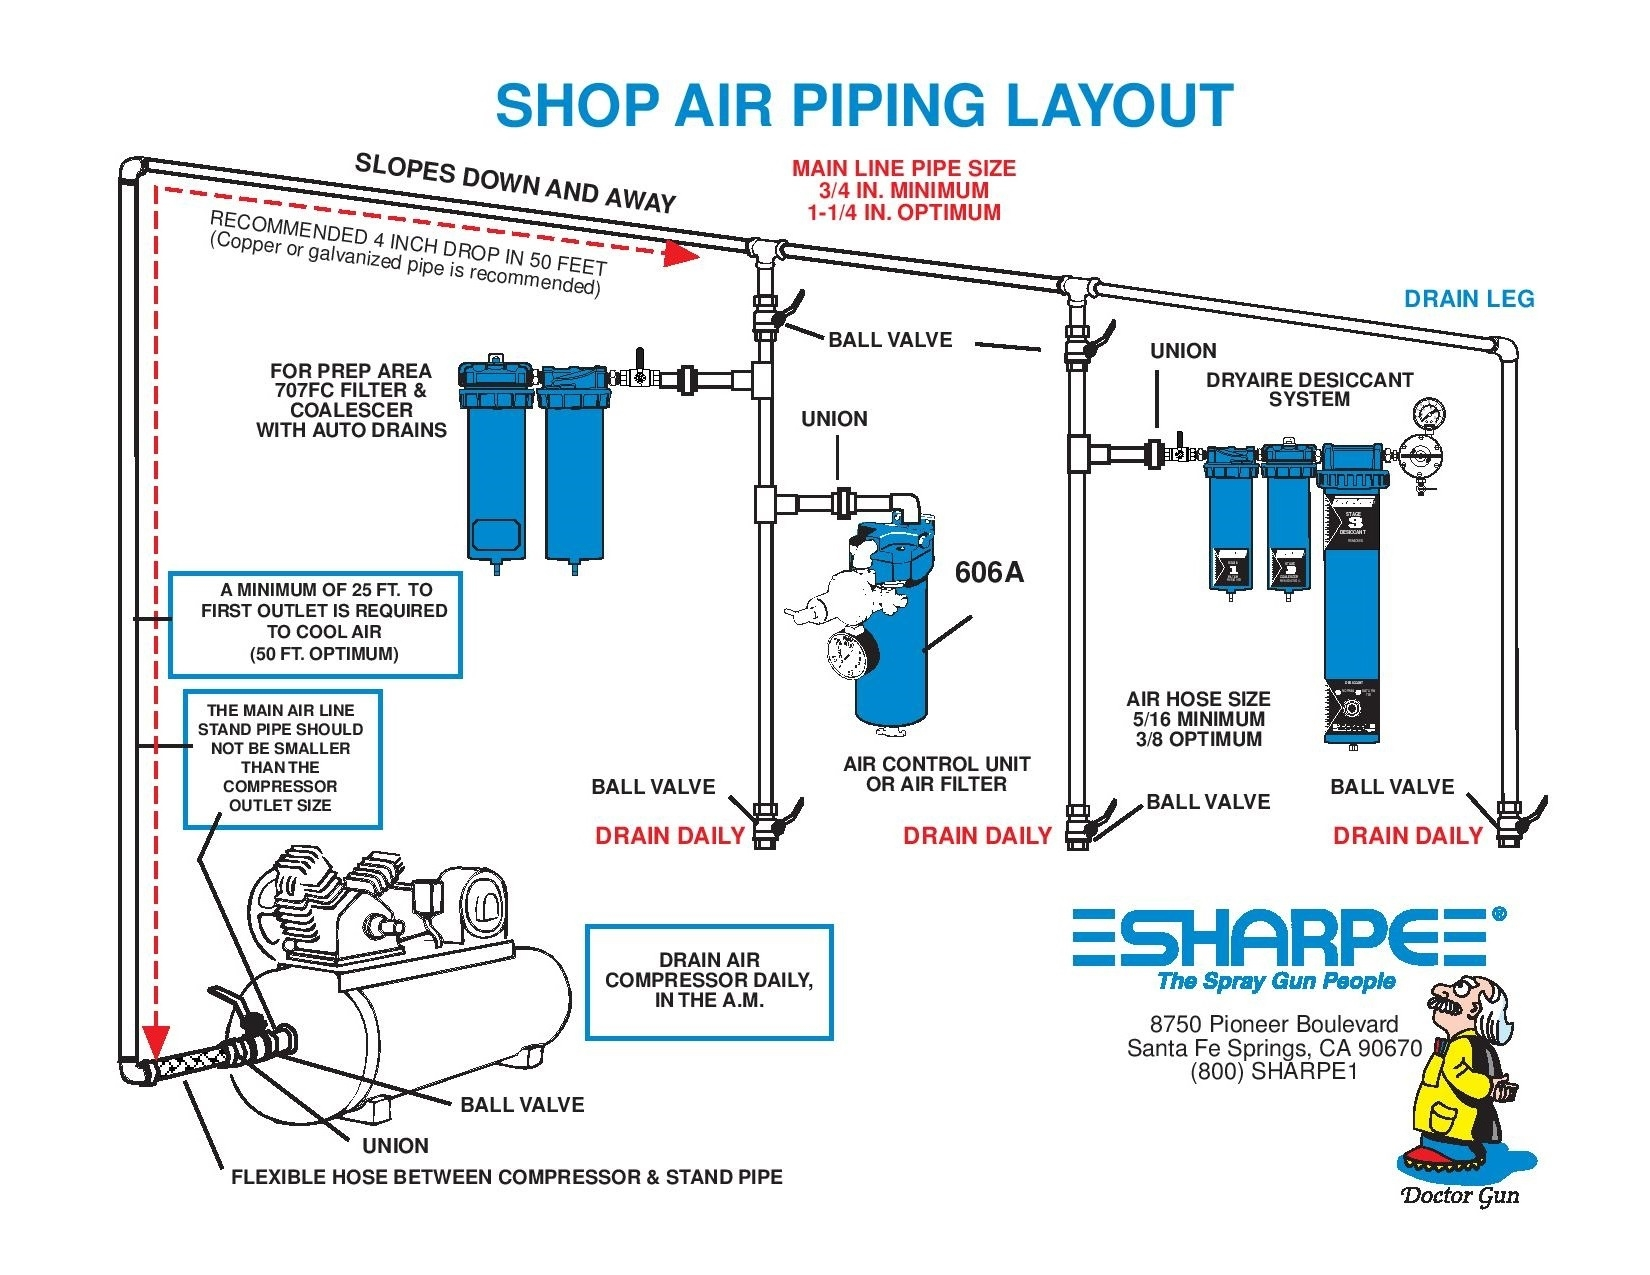 pipe-layout-page-rotated-90.jpg ...